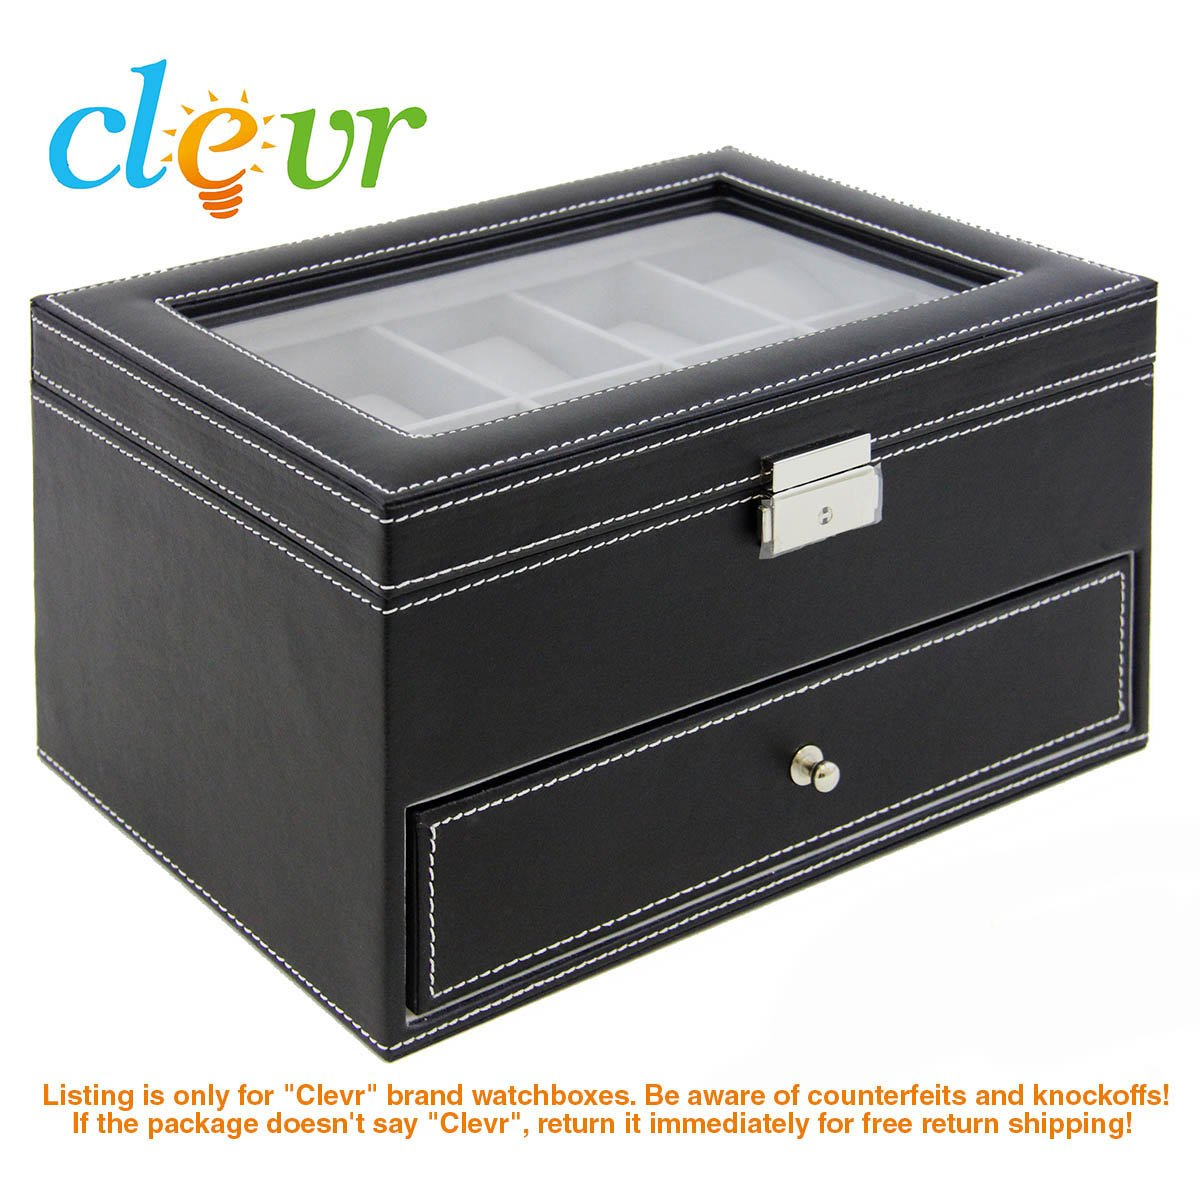 Watch Box Large 20 Mens Black Leather Display Glass Top Jewelry Case Organizer, Watch Box Leather Display Glass Top Jewelry Case Organizer Storage Black